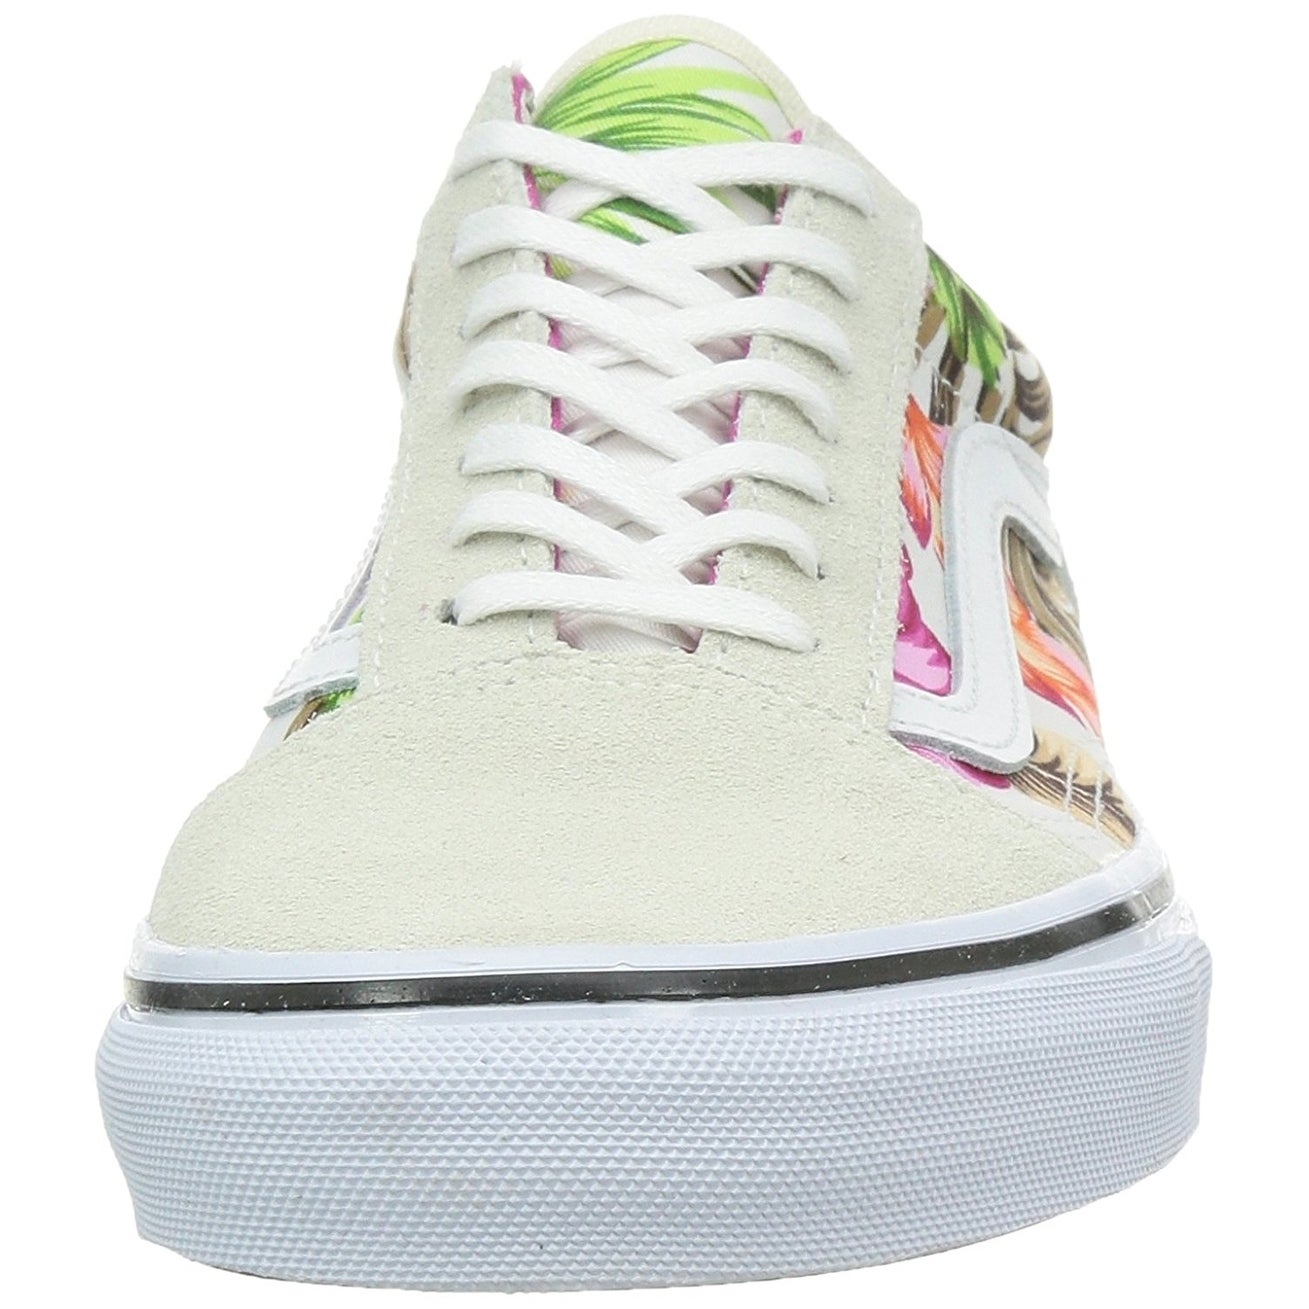 6ffac488c2ffe3 Shop Vans Womens Old Skool Low Top Lace Up Fashion Sneakers - Free Shipping  On Orders Over  45 - Overstock - 18539306